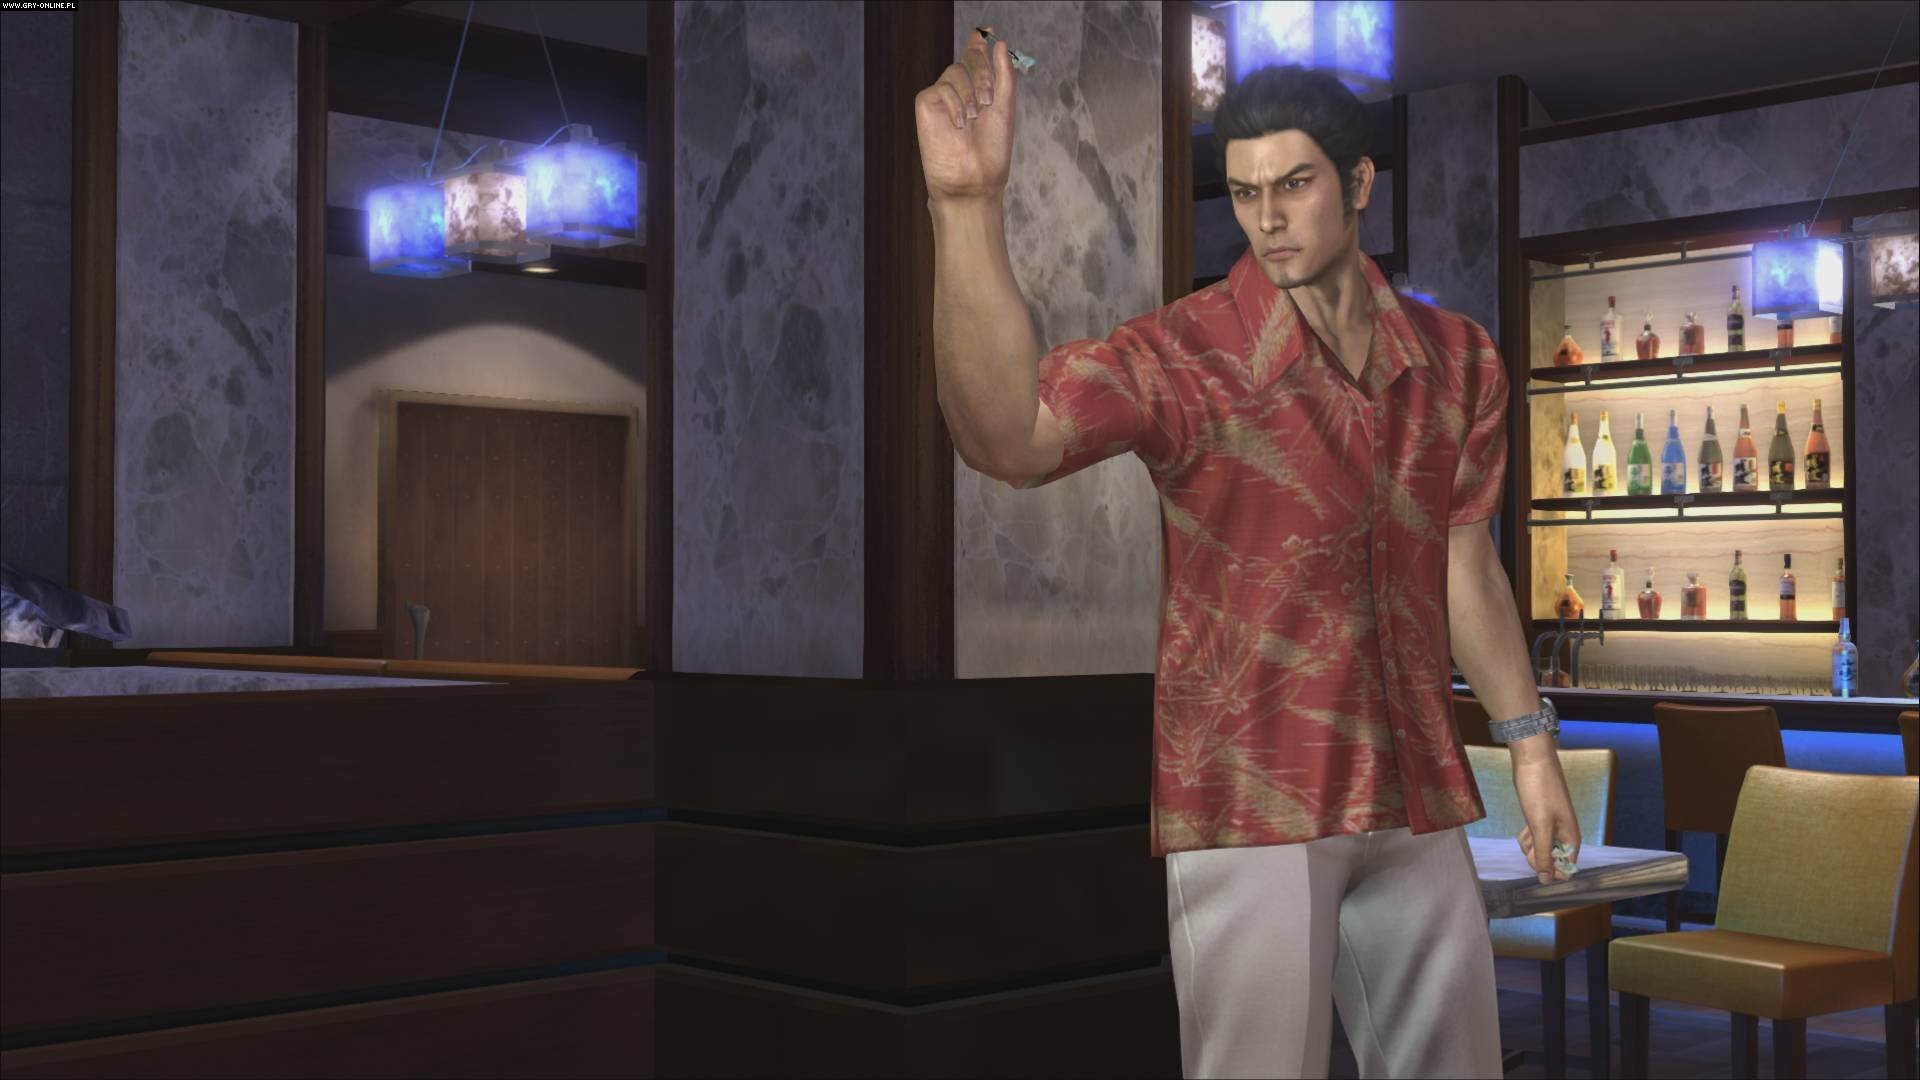 Yakuza 3 Remastered PS4 Gry Screen 6/45, SEGA